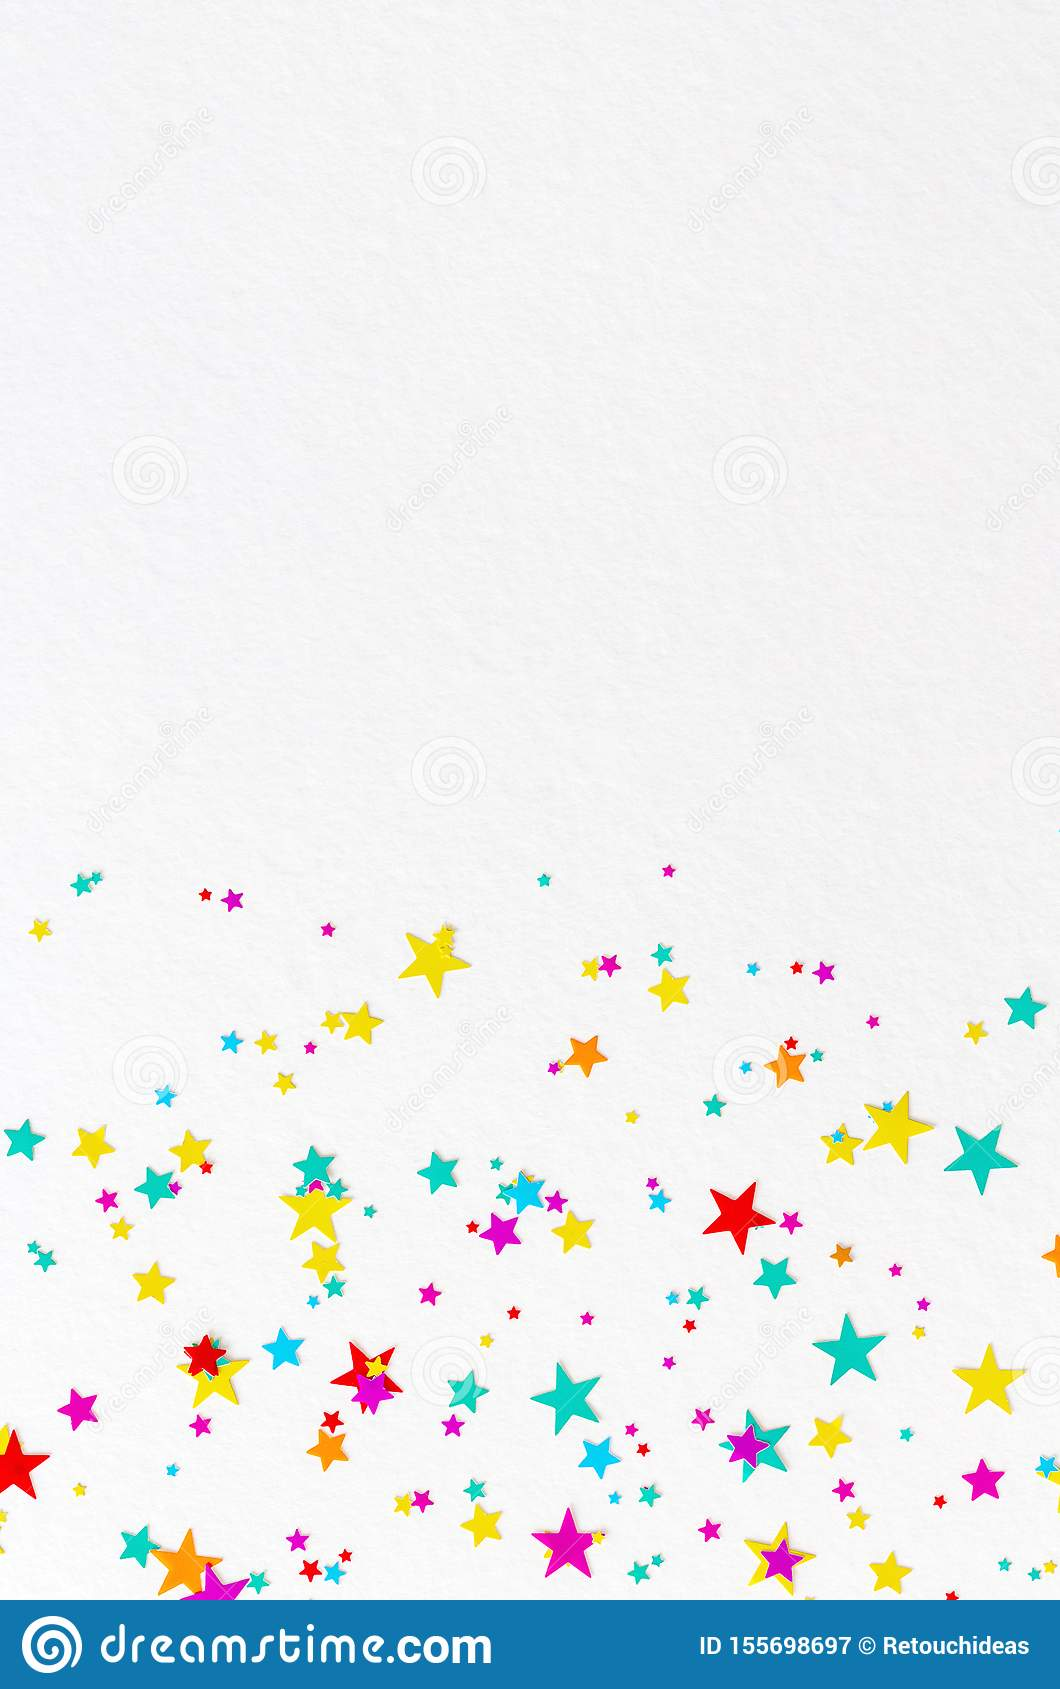 Colourful vibrant star background on white paper.